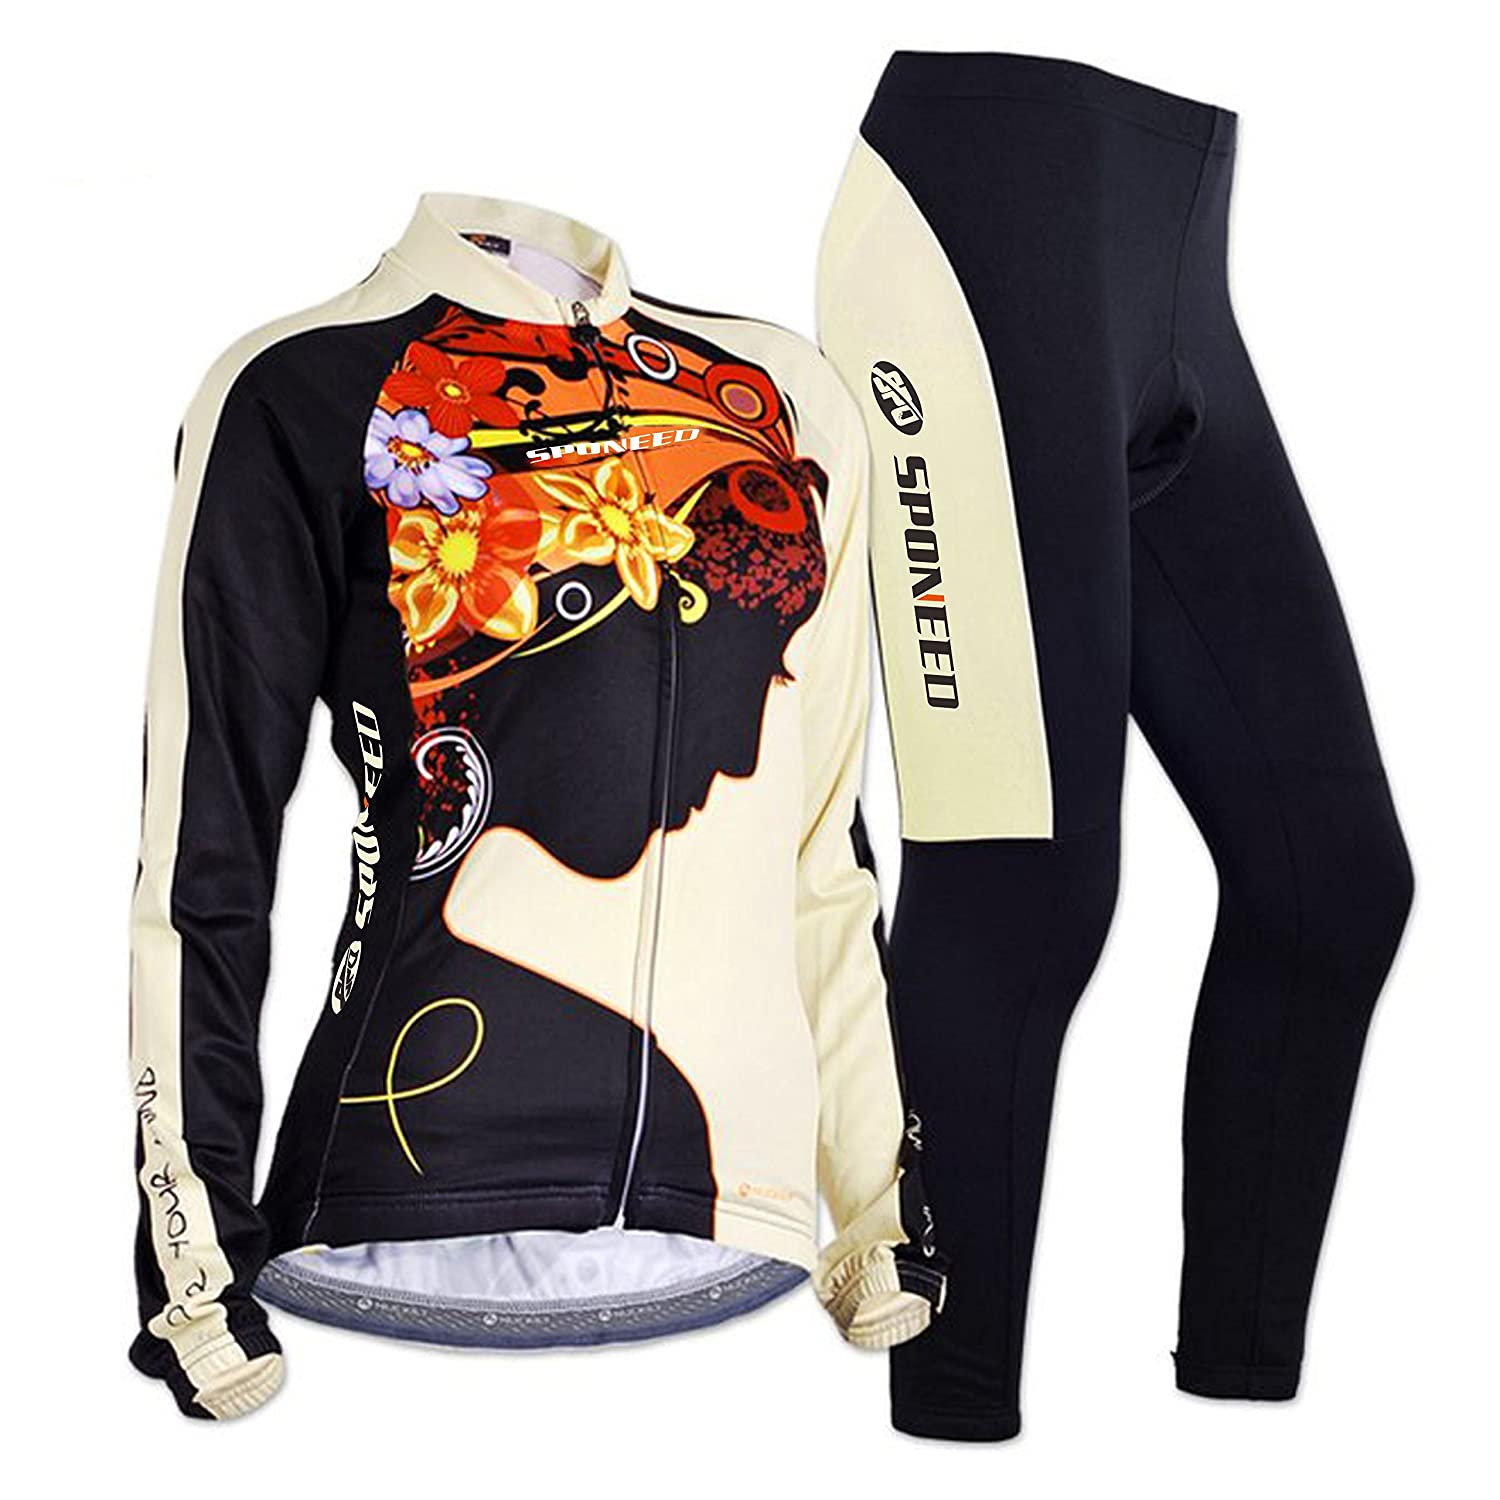 sponeed Cycling Jersey Women Colorful Long Sleeve Shirt Pants Set UV Protective Sentibery